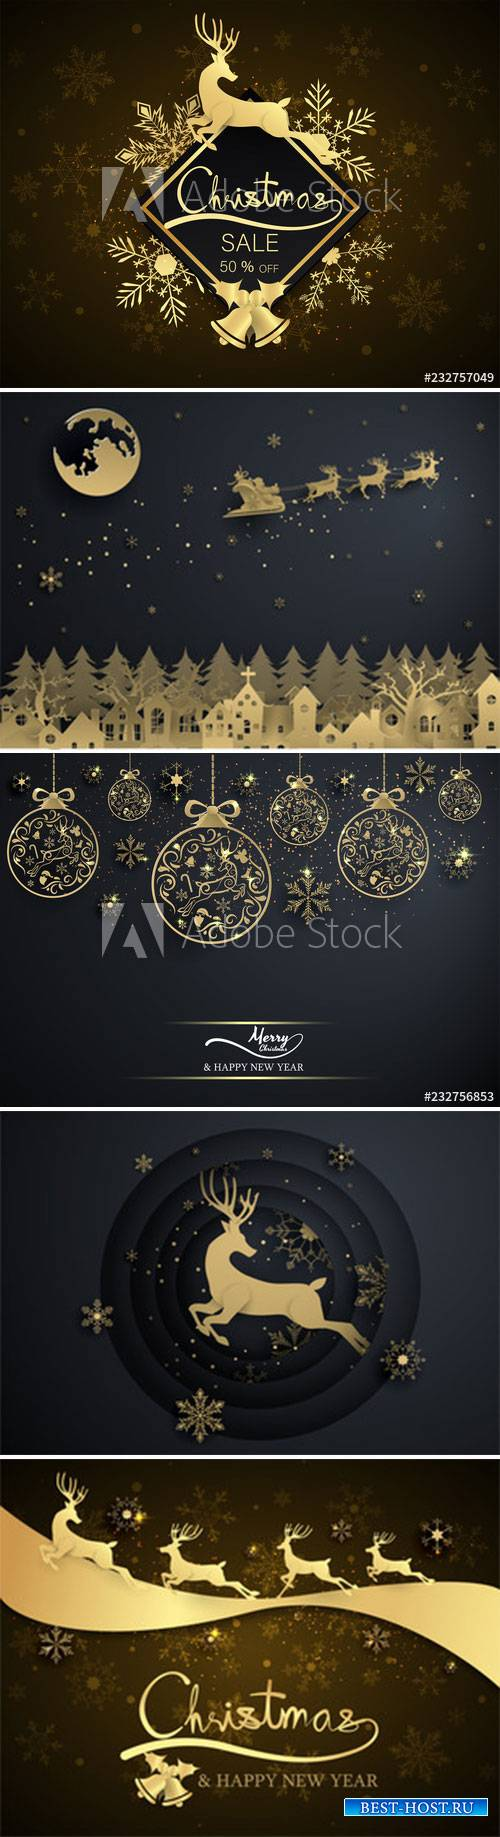 Gold snowflake and decoration christmas ball on black background, merry chr ...